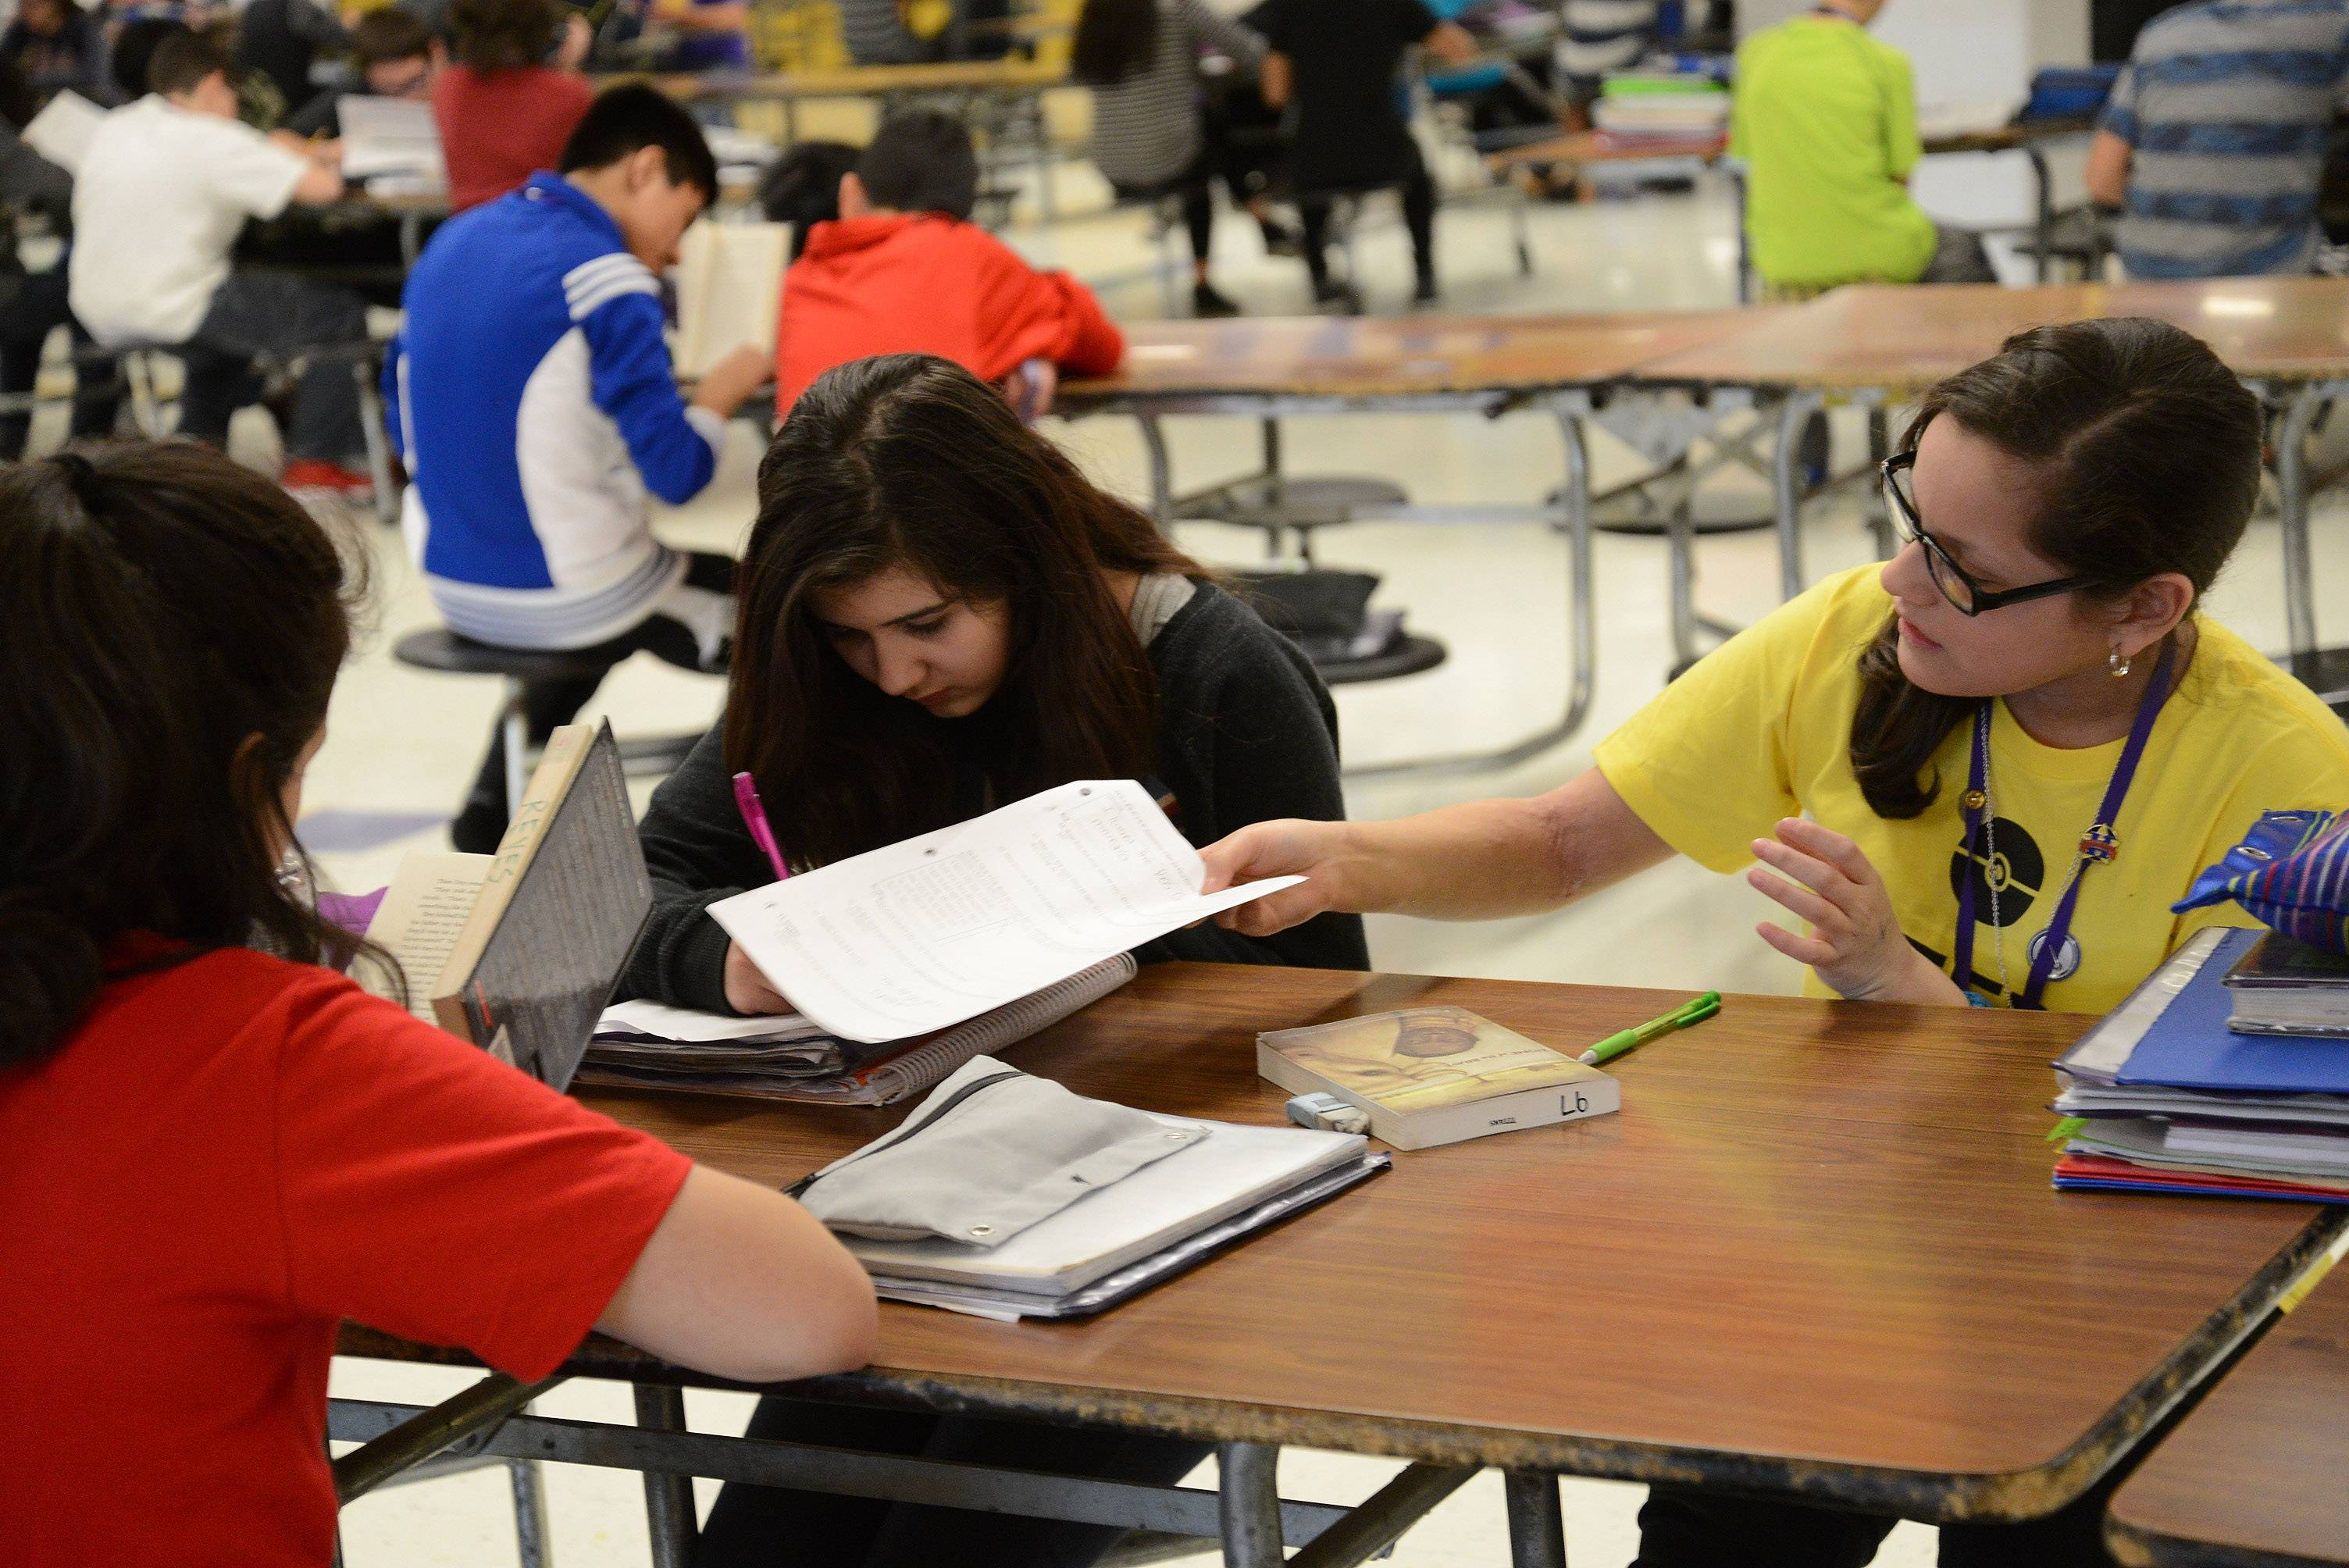 From left, Kaylee Bautista, Shyla Rajabali and Emily Bautista use some quiet time to study before lunch at Tefft Middle School in Streamwood, where nearly 75 percent of students were considered low-income in 2014.